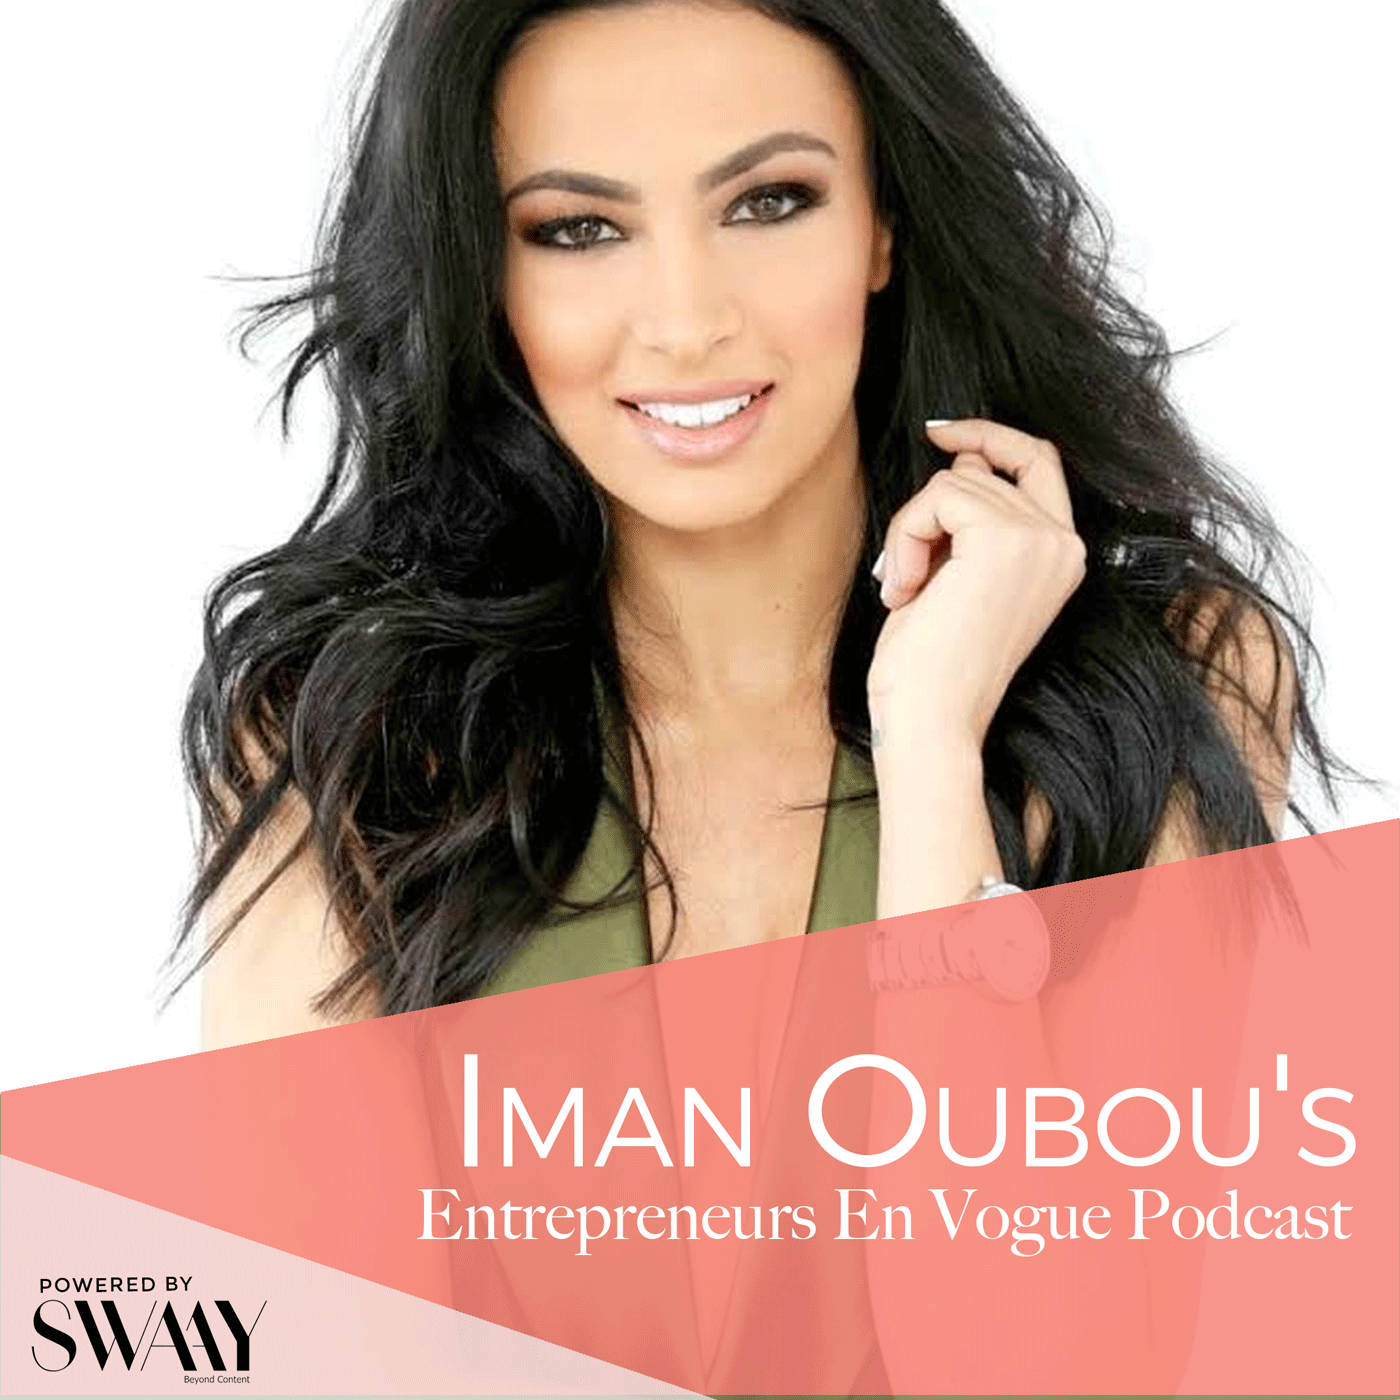 Conversations with powerful women in business hosted by Iman Oubou